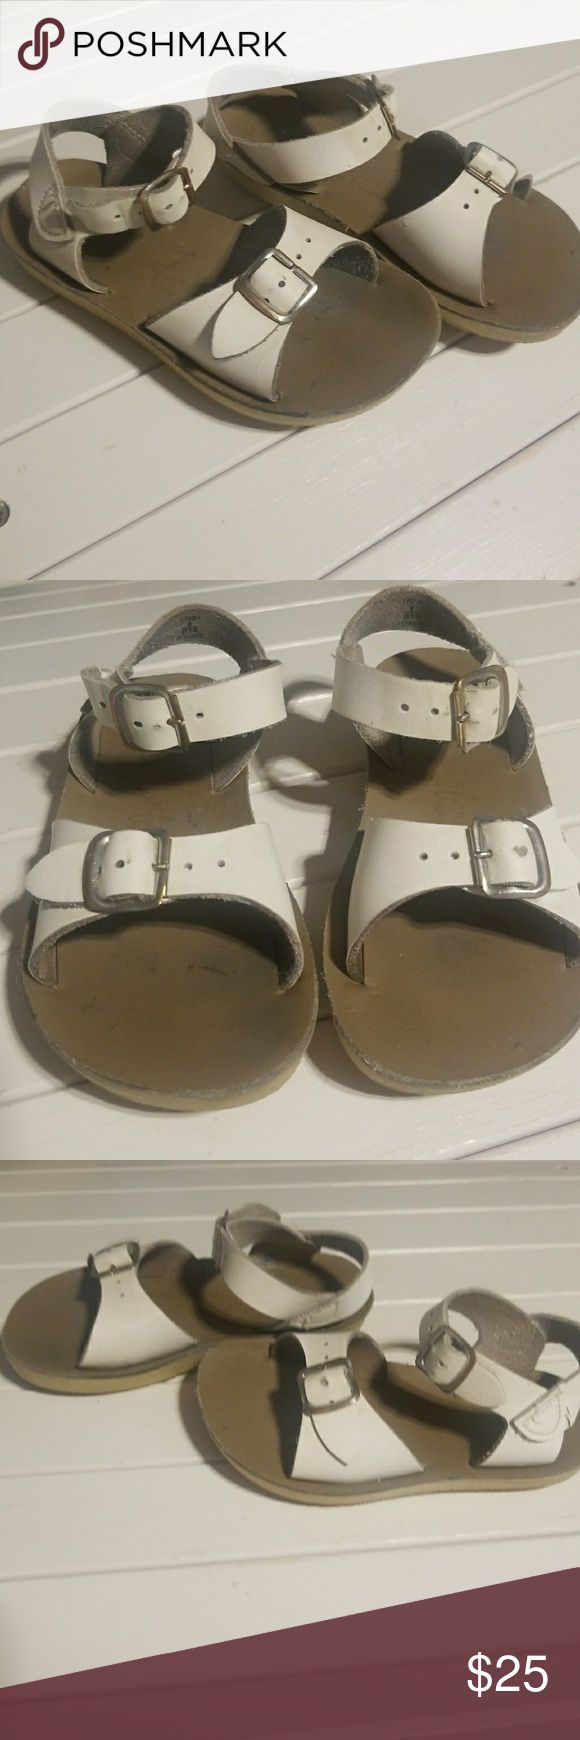 Salt water sandals toddler by hoyway Salt water sandals toddler by hoyway. Great support for play. Very durable soles and super comfort. Salt Water Sandals by Hoy Shoes Sandals & Flip Flops